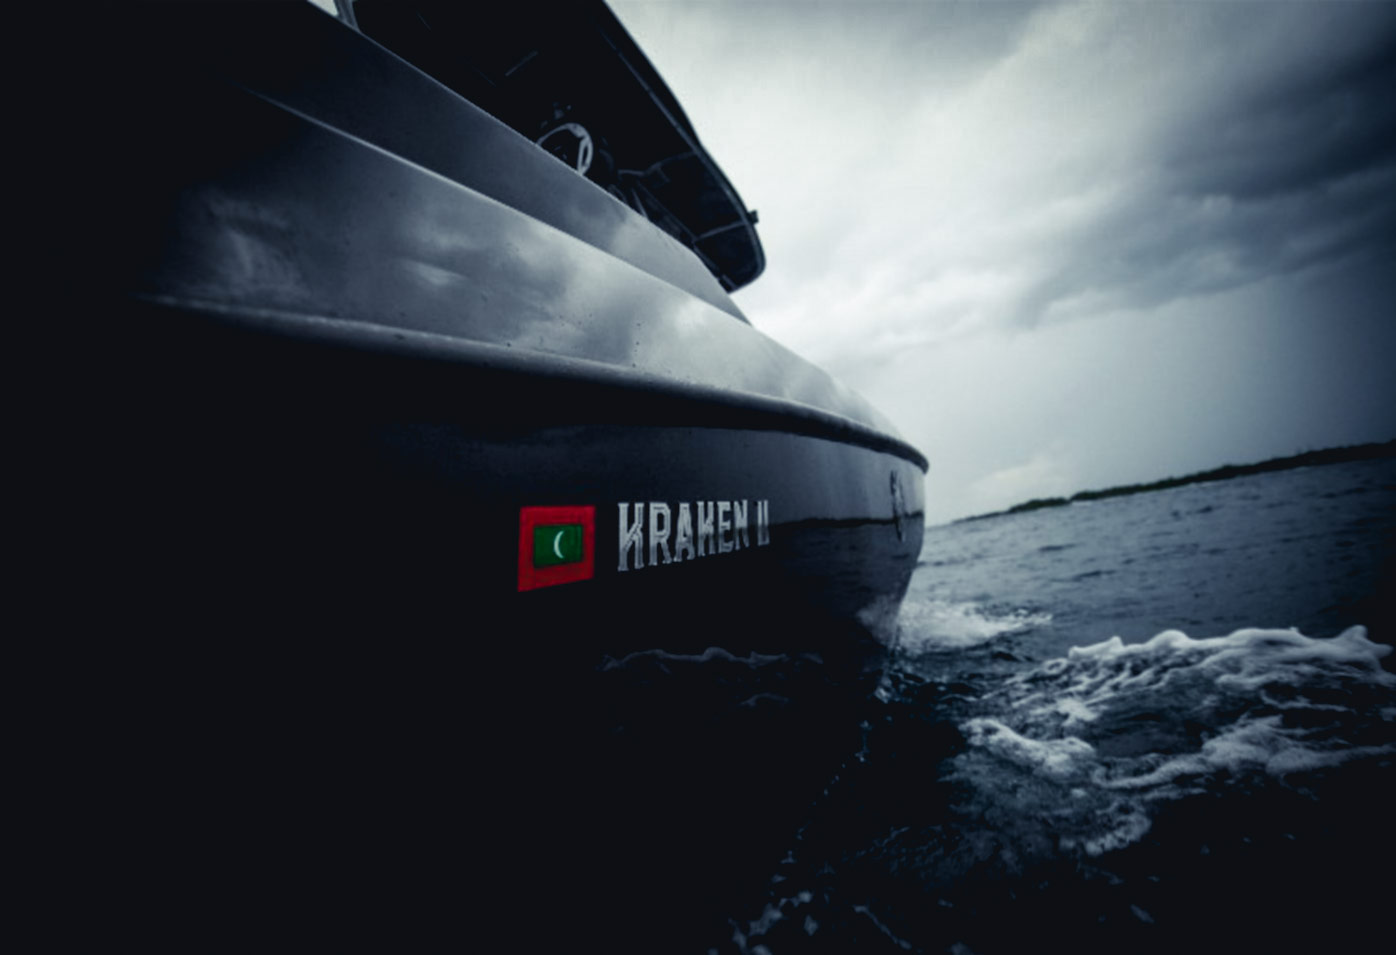 The beautiful contrast of the lettering on the black paint of the boat.